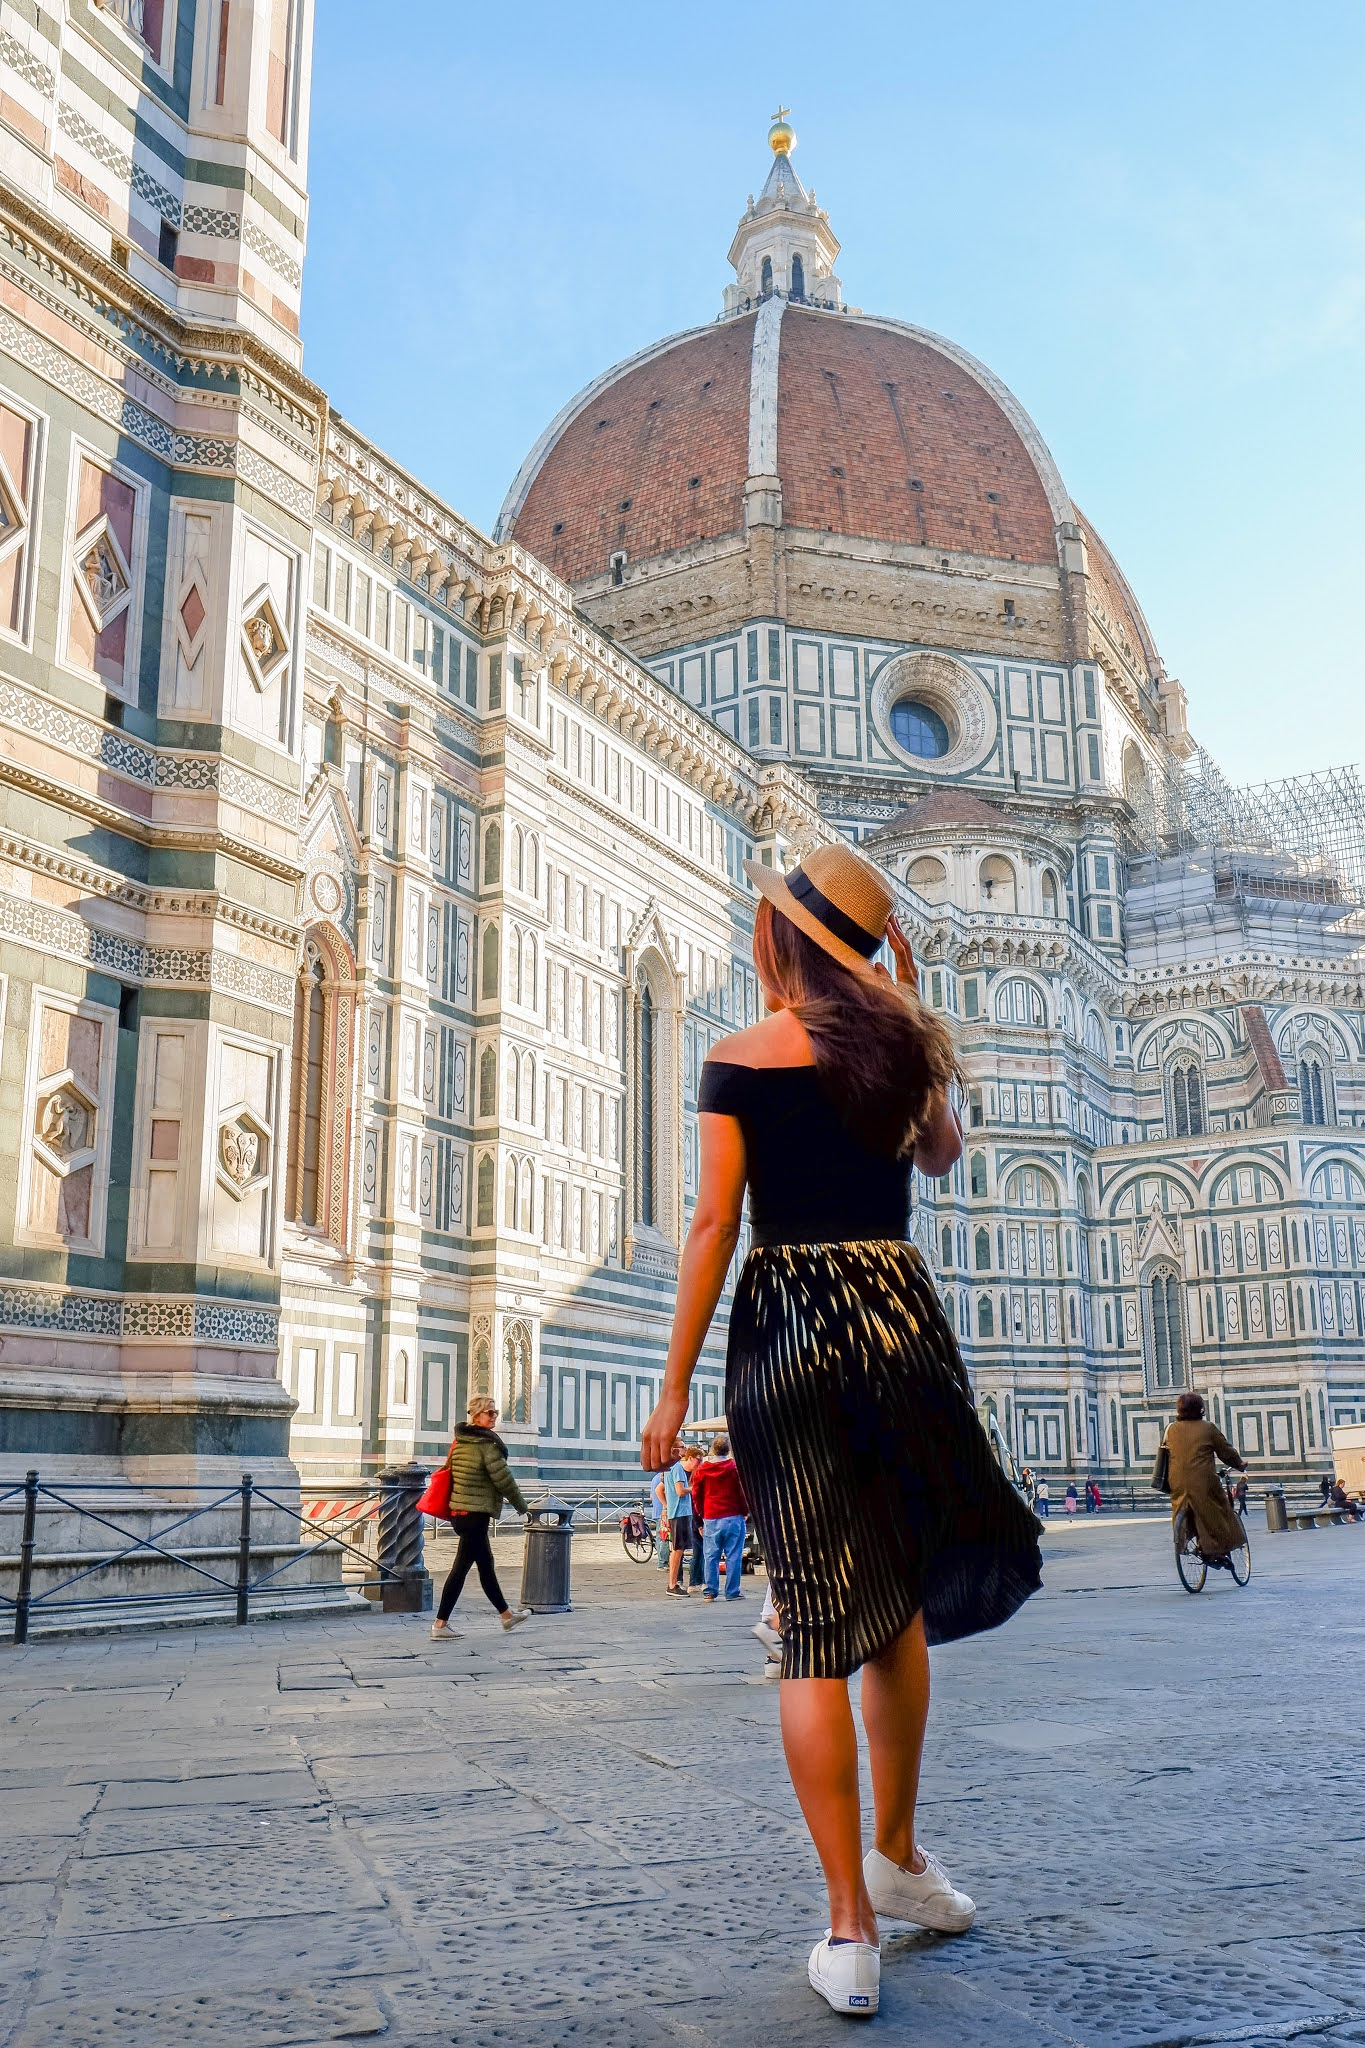 Duomo Florence Italy, florence italy, renaissance architecture, italian architecture, florence italy travel guide, florence blogger